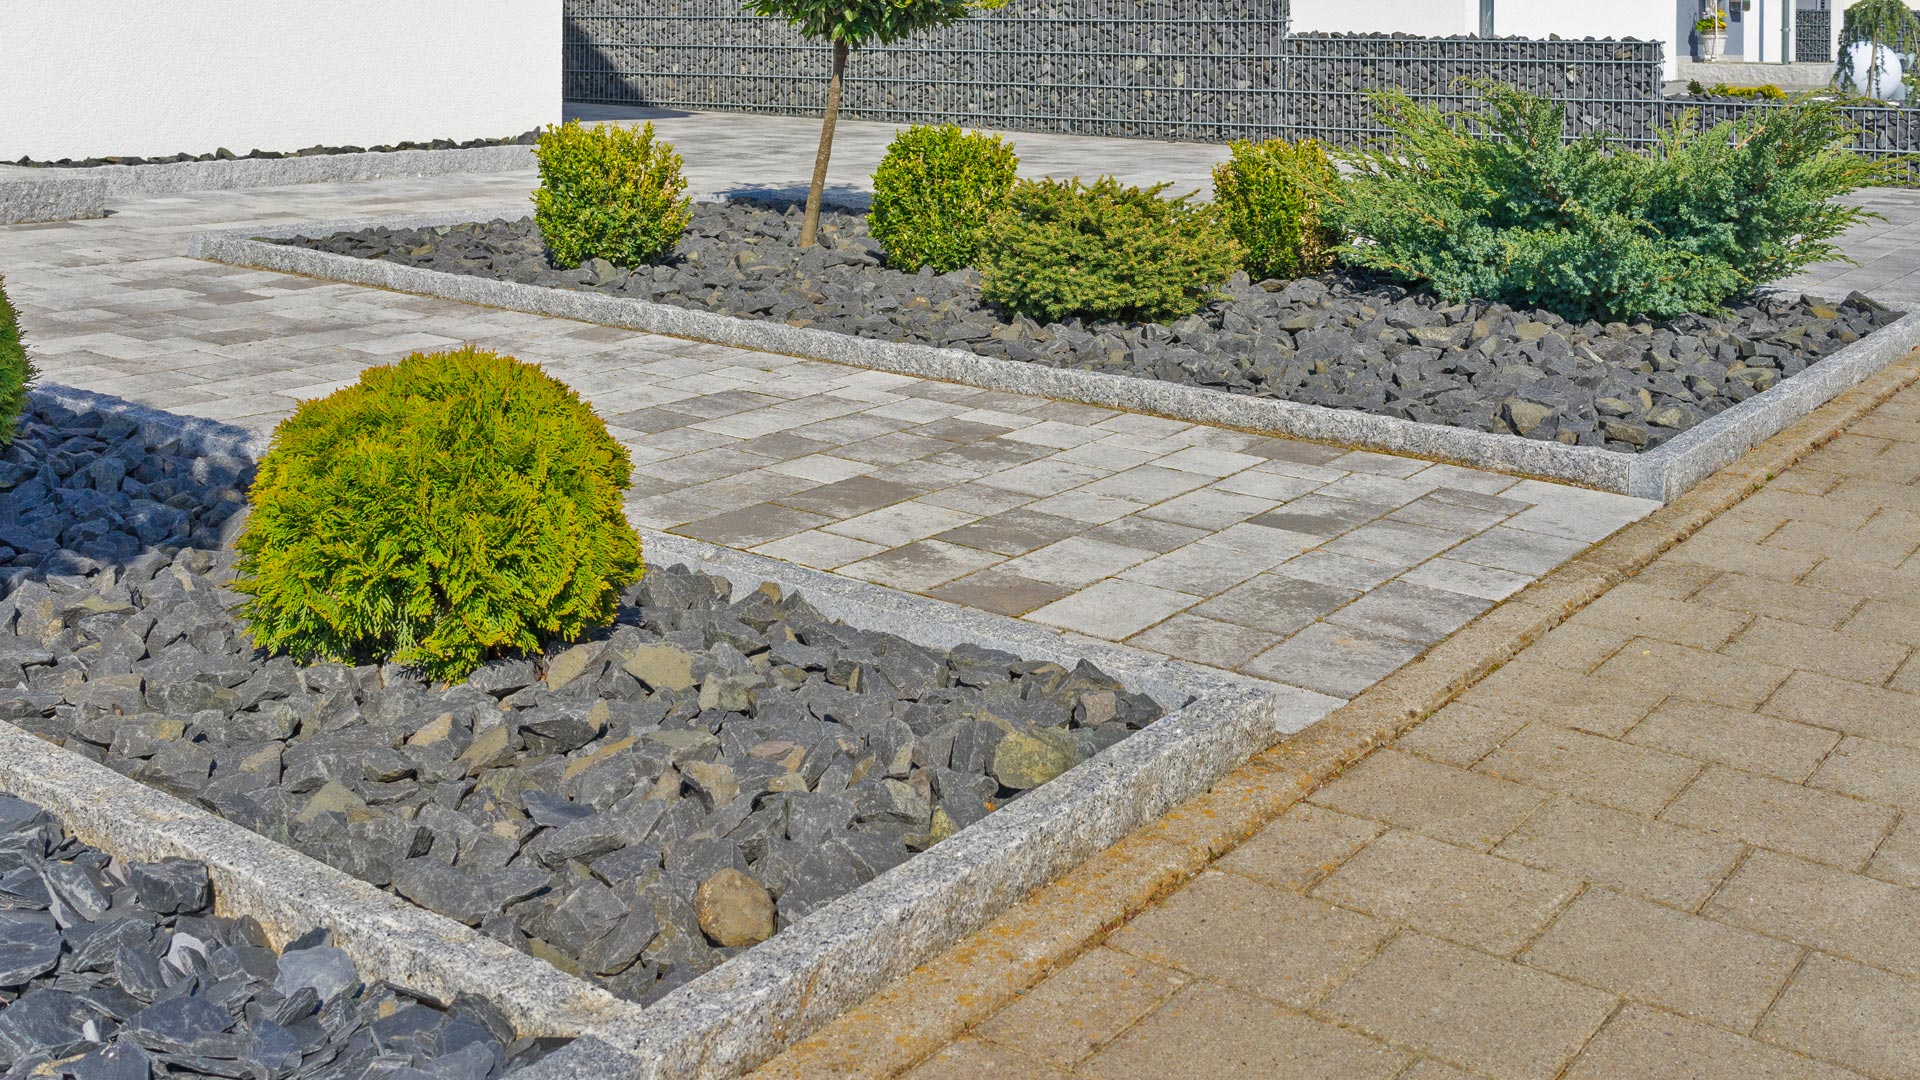 A paver side walk with decorative rock accents and small shrubs outside a commercial building in Bethlehem, %%sate%%.